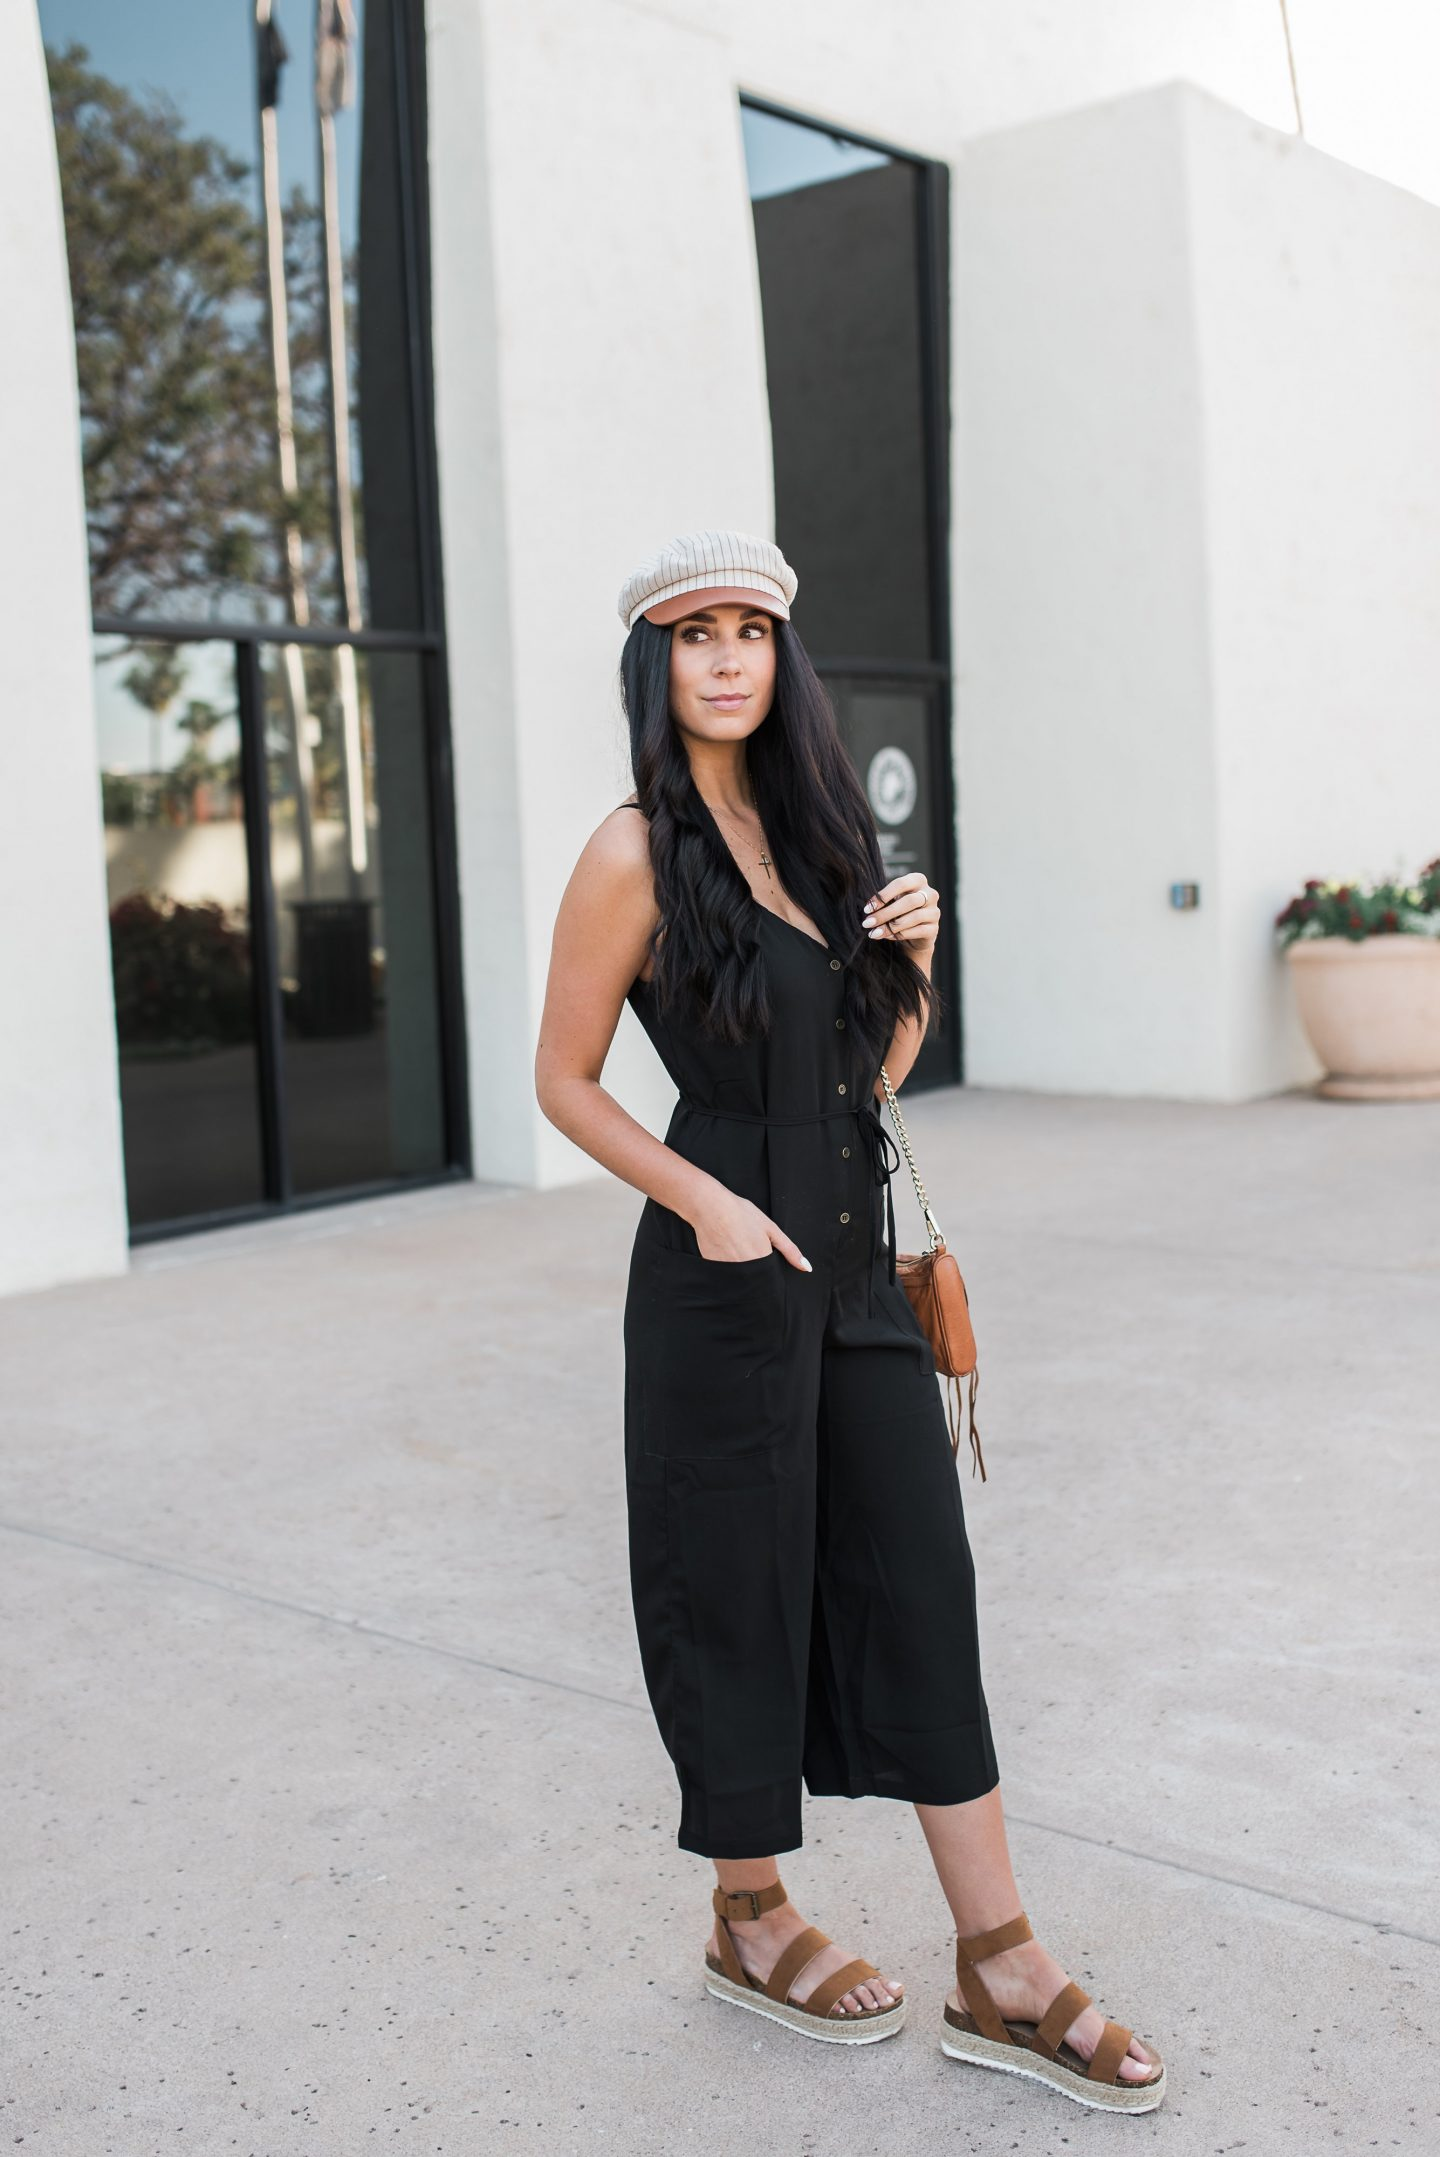 Black Jumpsuit + Baker Boy Cap